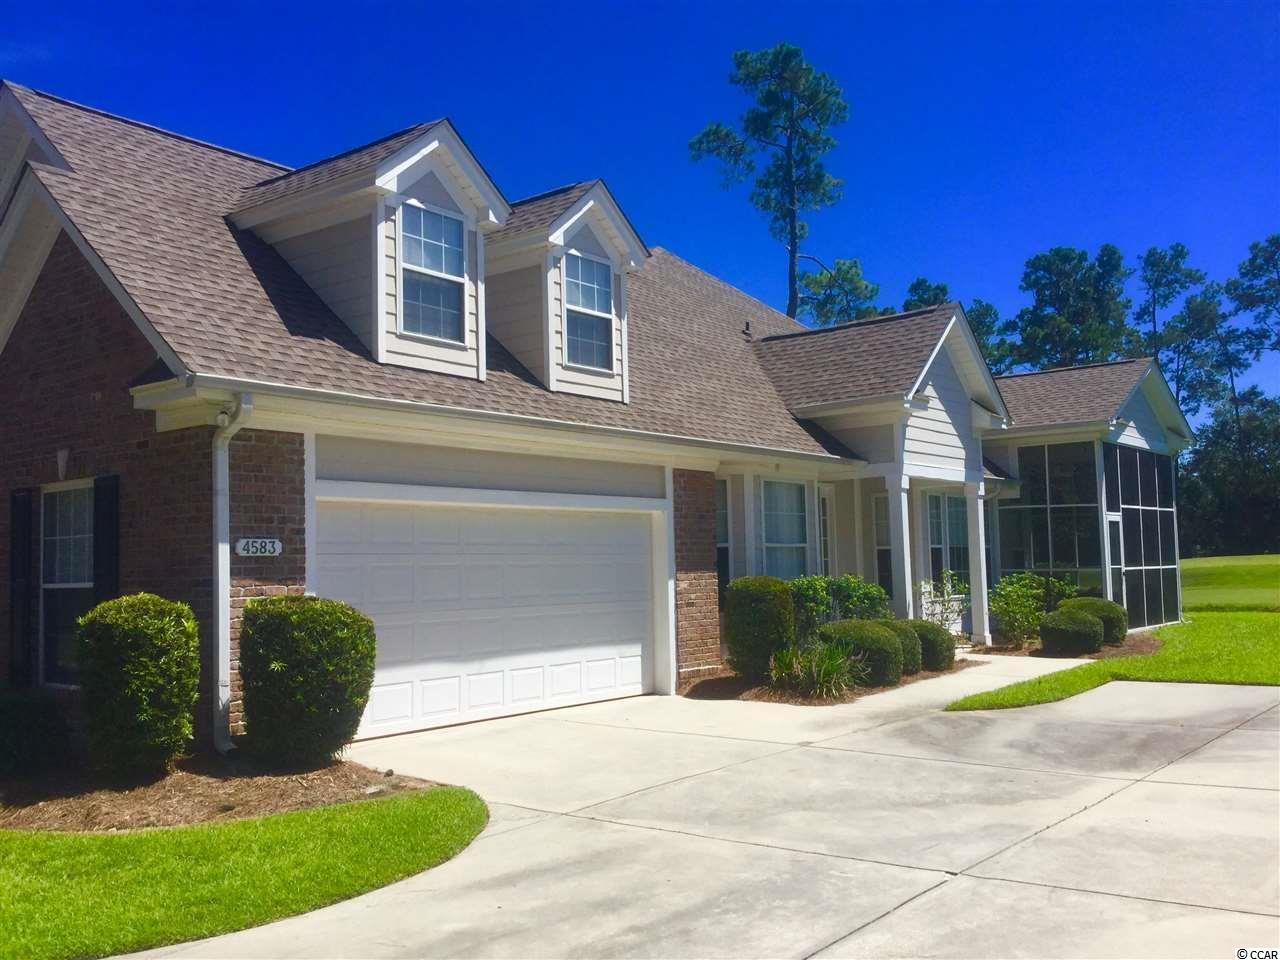 MLS#:1716749 One Story 4583 Painted Fern Ct